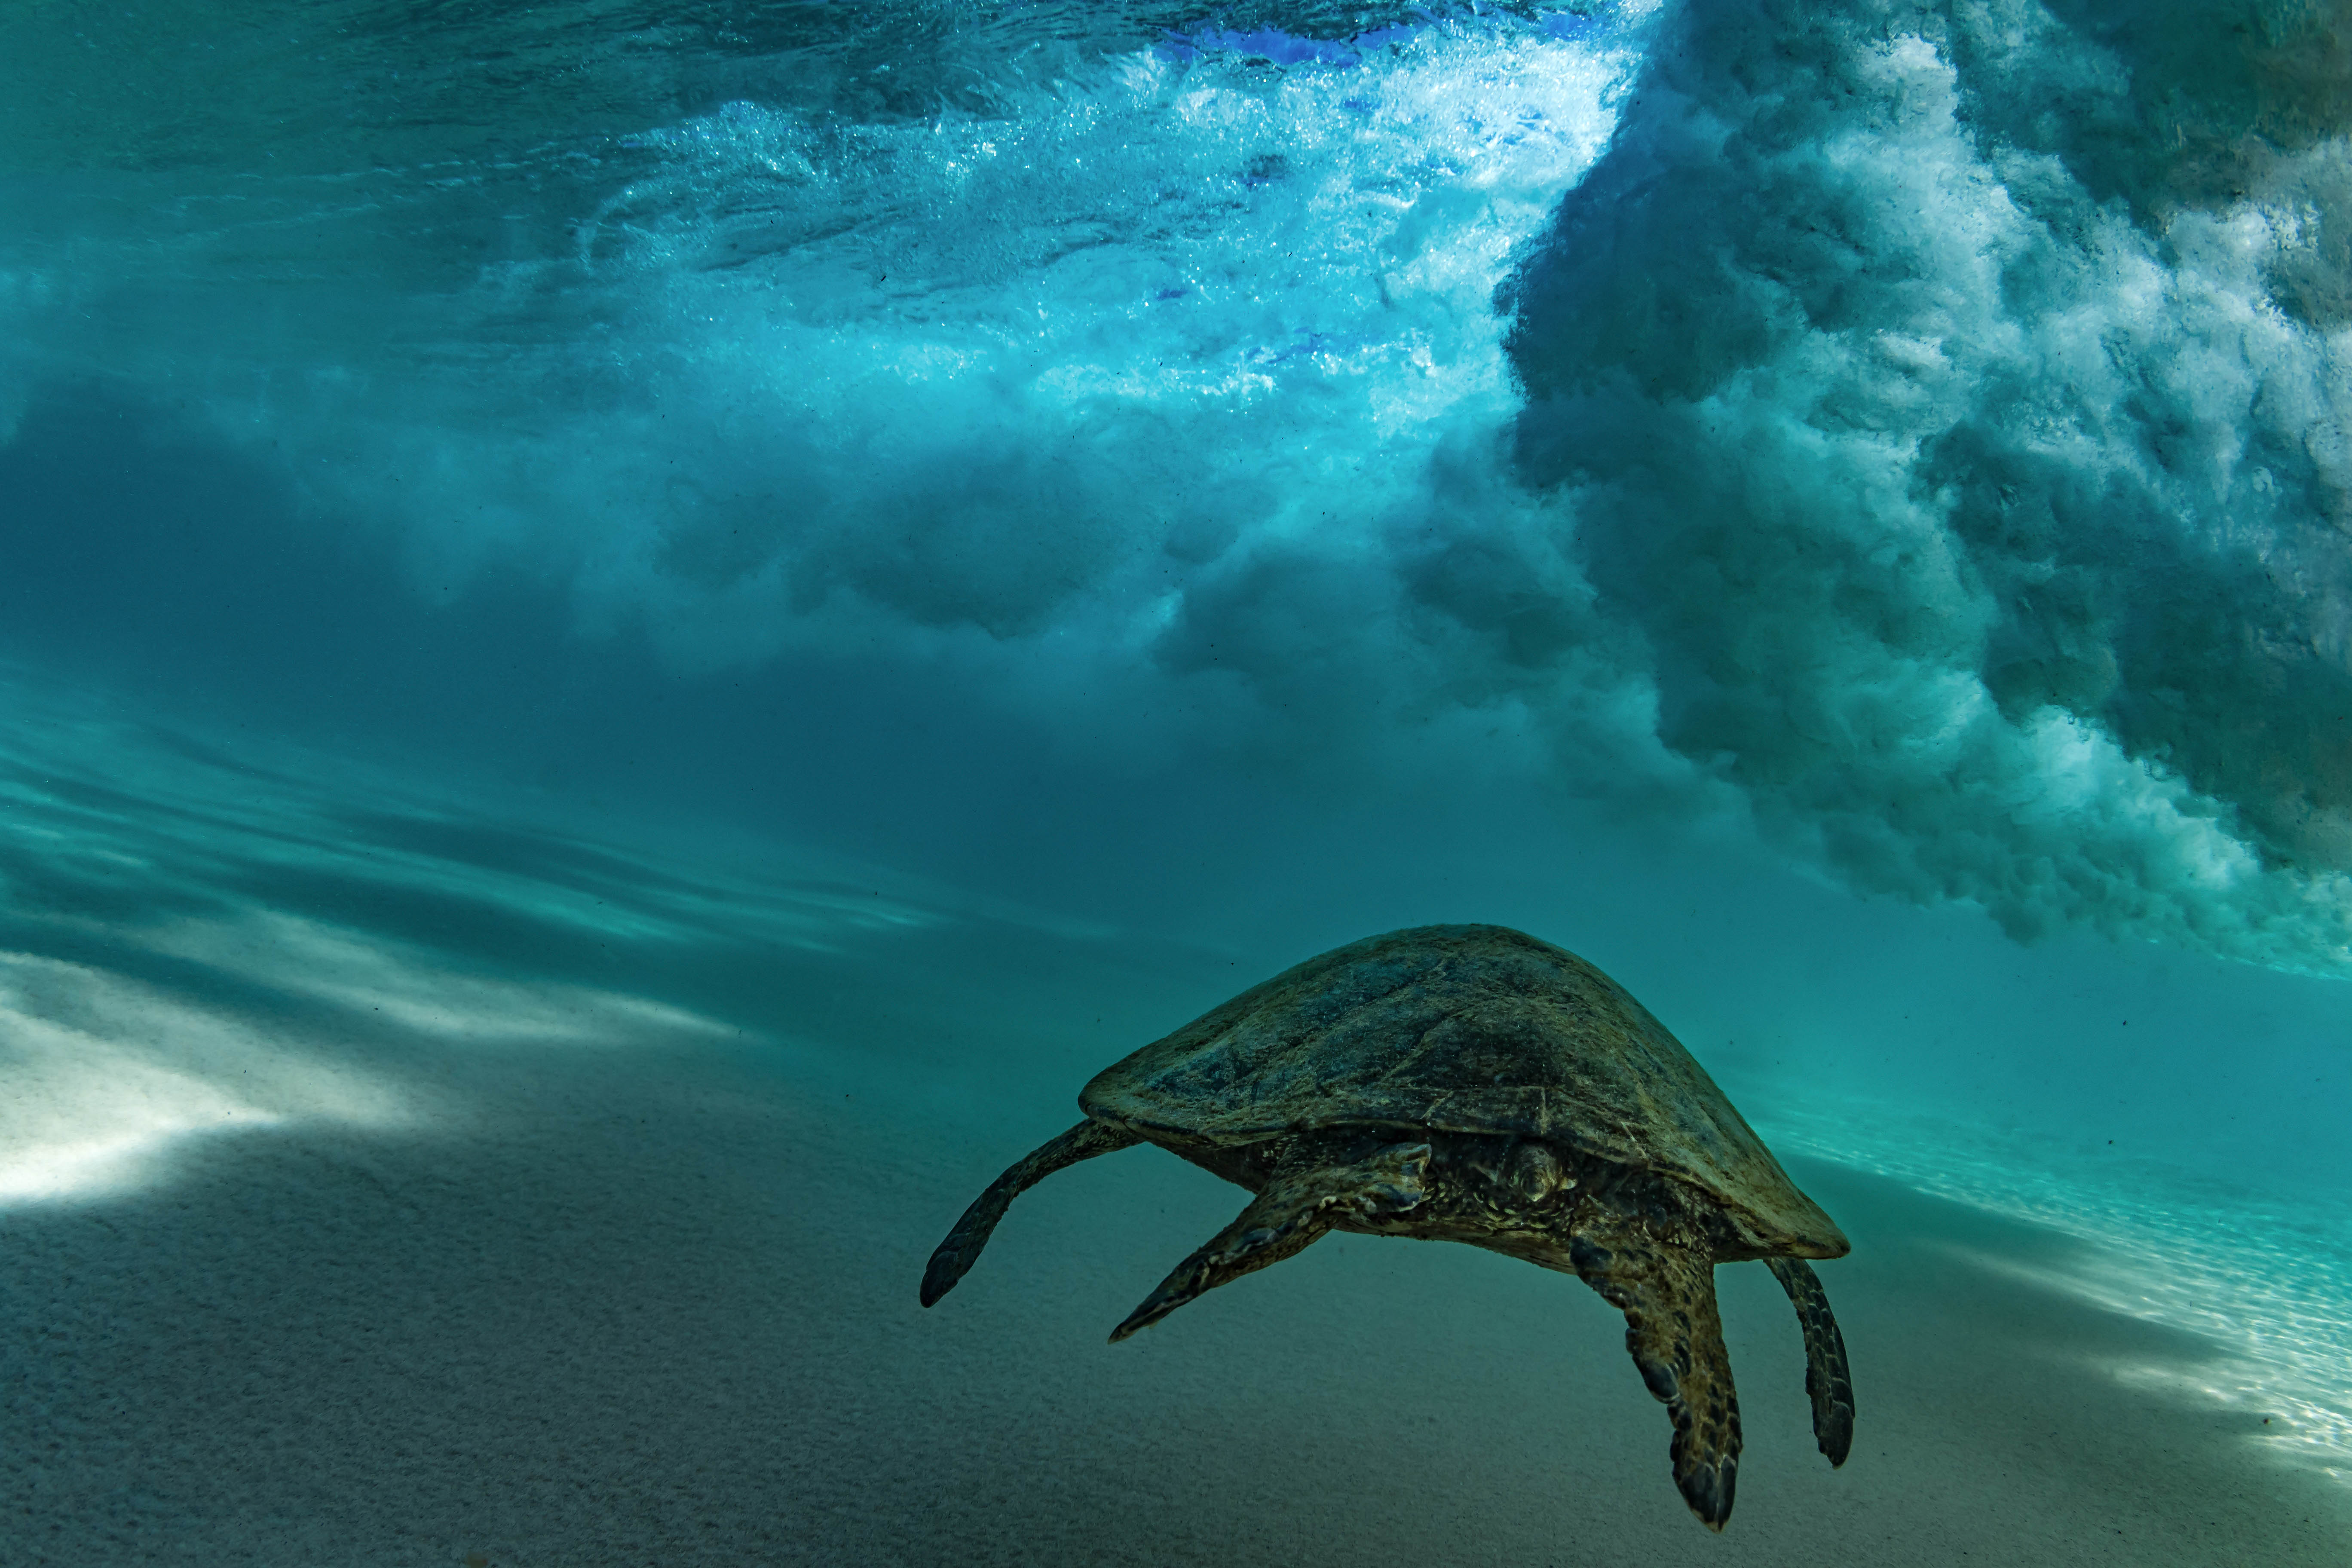 Sizeable turtles often get caught up in a wave .